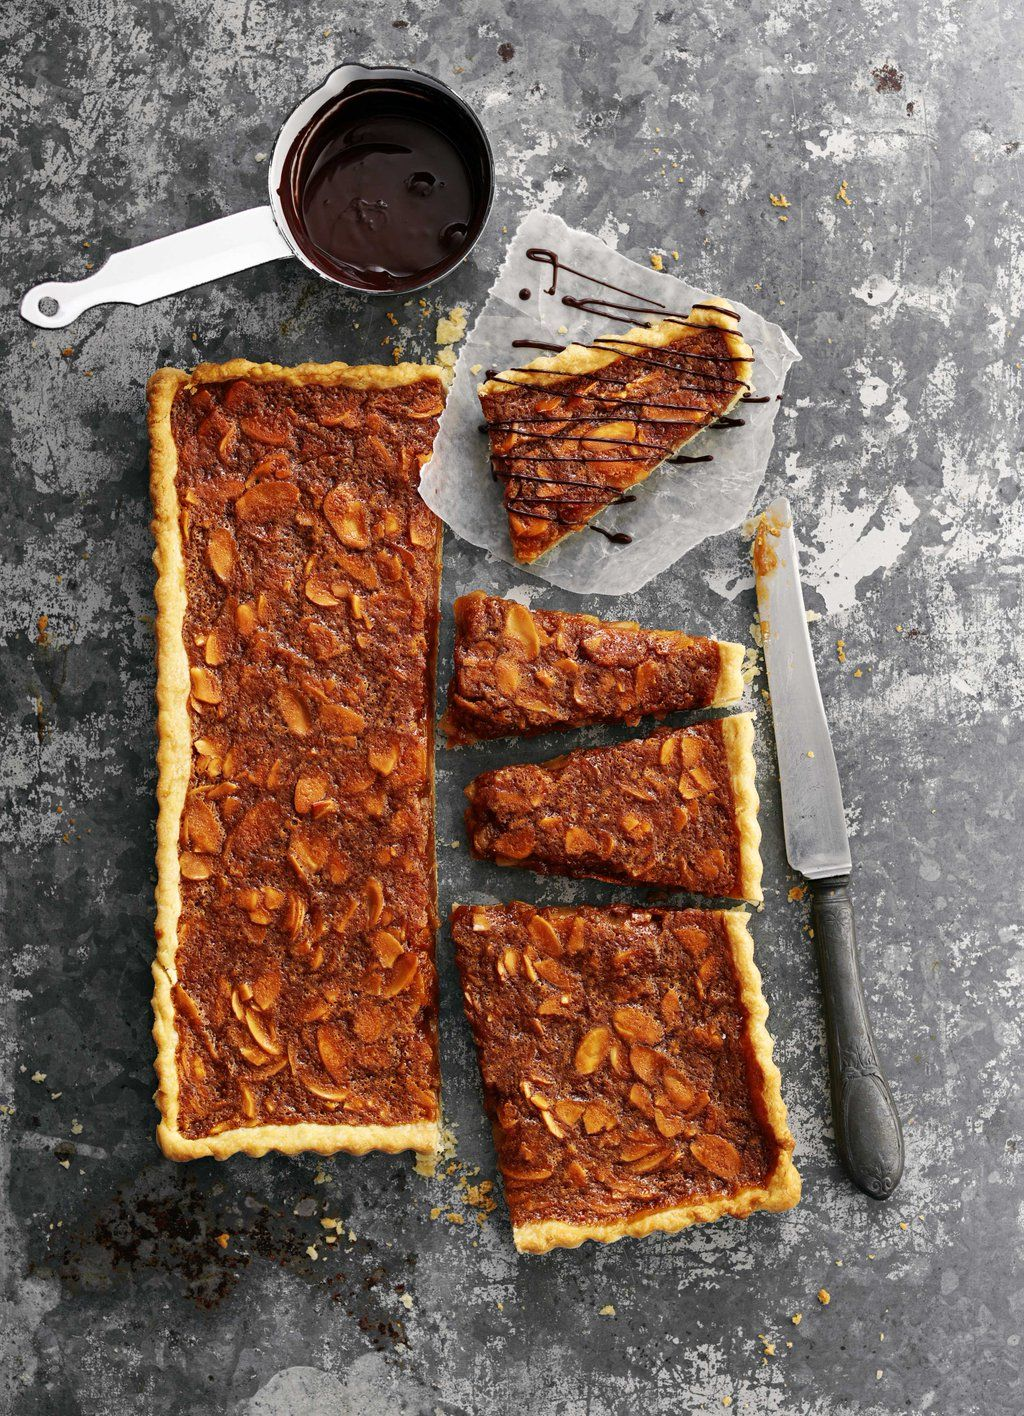 """olive magazine on Twitter: """"We've got trays and trays of snacks in this collection ¢traybakes #baking #snacks  https://t.co/uB9qyp2FyZ https://t.co/lmRwTljIEn"""""""